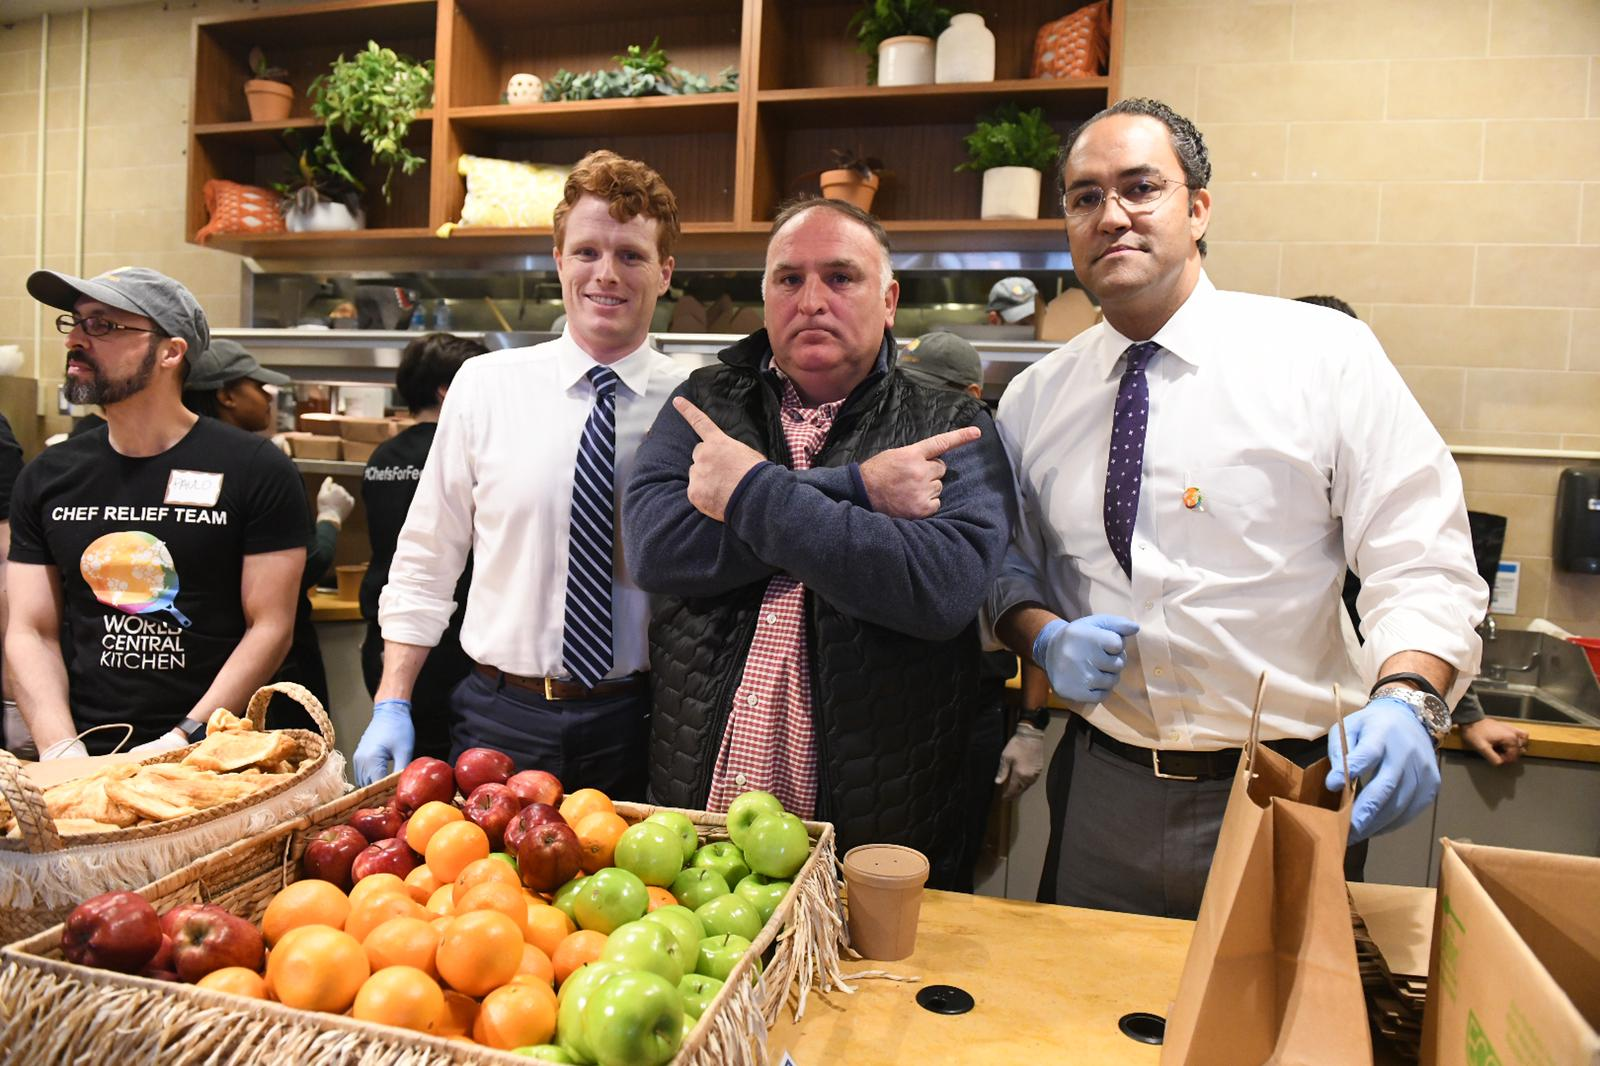 Democratic Rep. Joe Kennedy III of Massachusetts (left), Washington chef José Andrés and Republican Rep. Will Hurd of Texas work together in Andrés' soup kitchen for furloughed workers on Jan. 23, 2019.